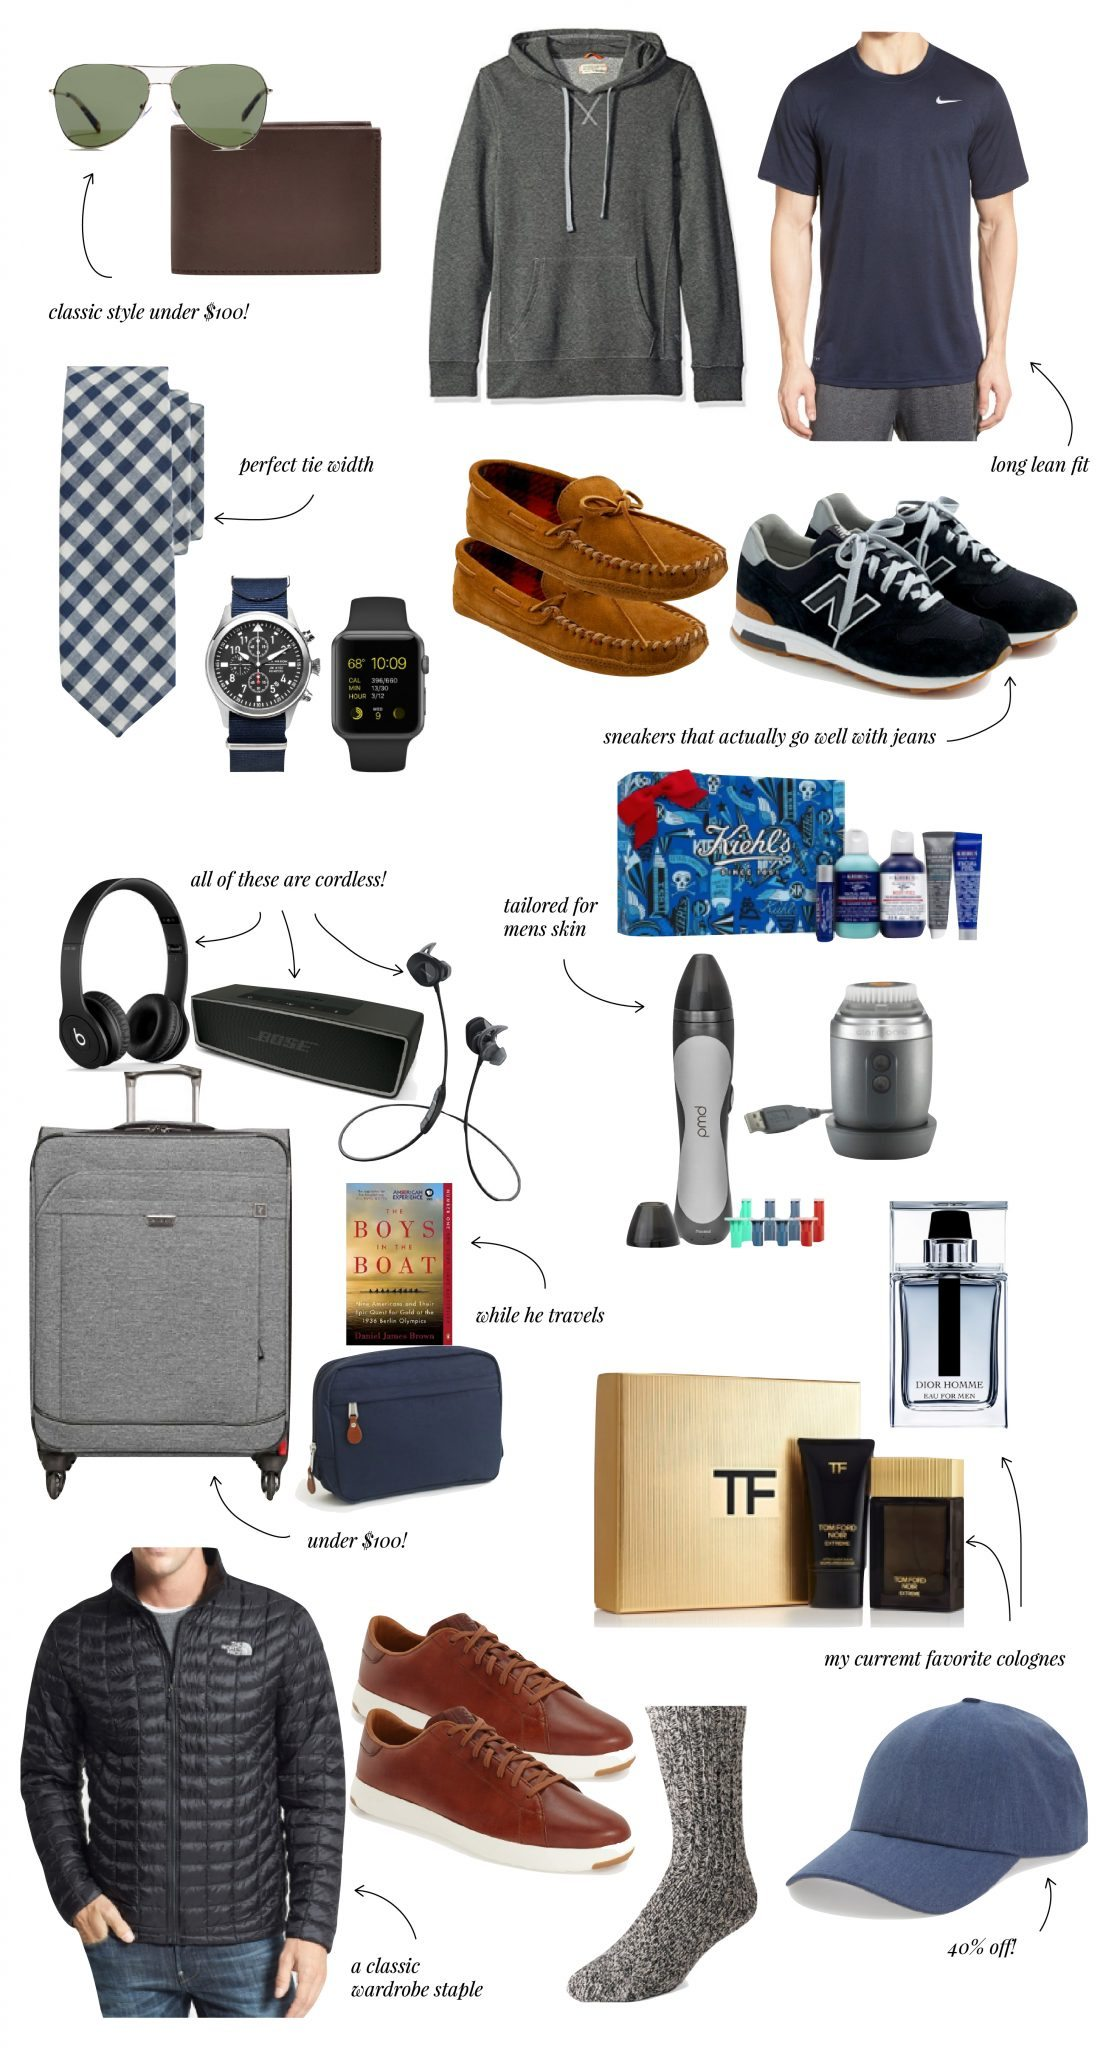 ELLE APPAREL HOLIDAY GIFT GUIDE 2016: FOR HIM